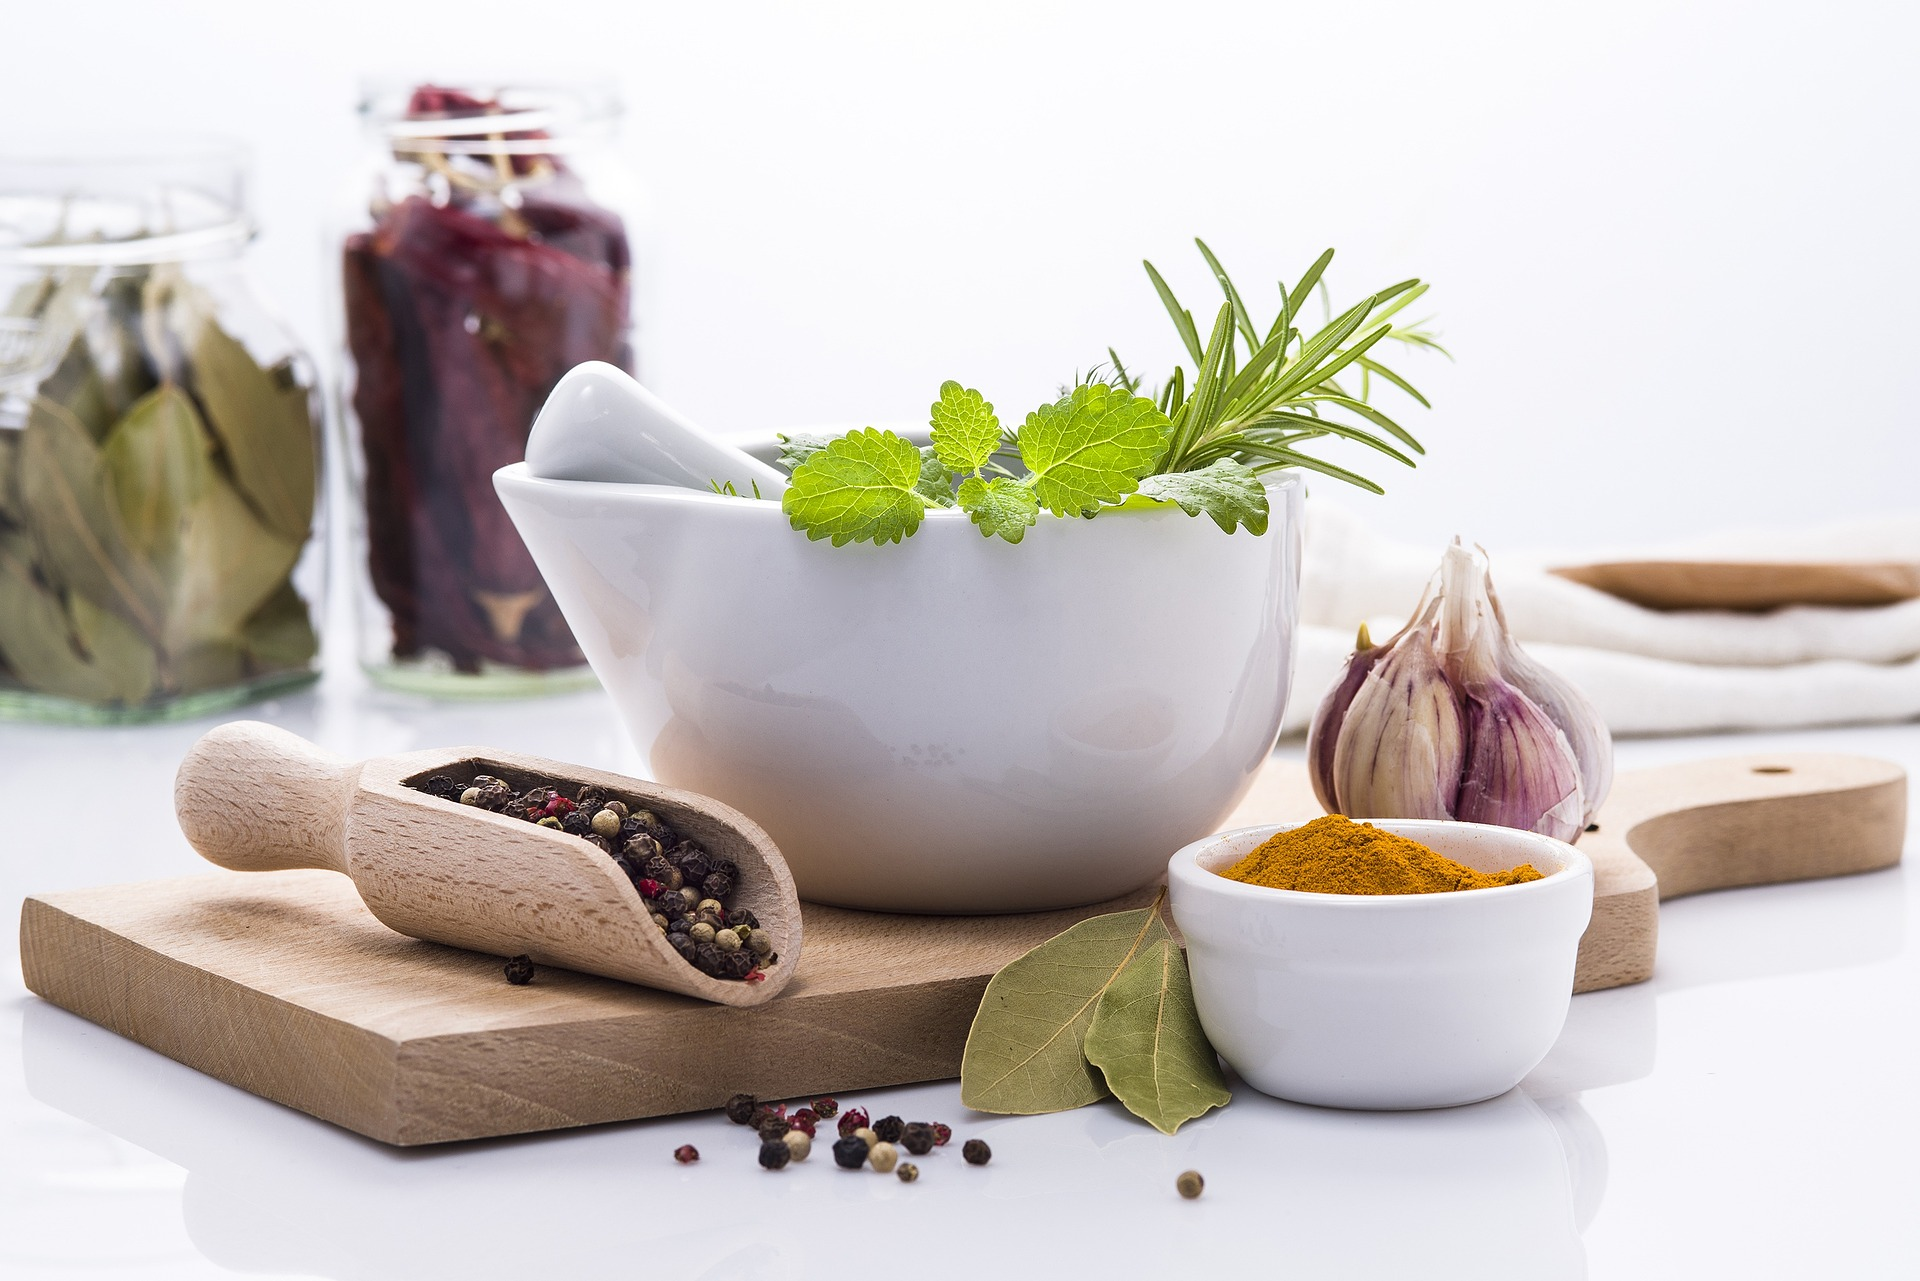 Knowing herbs to create flavors